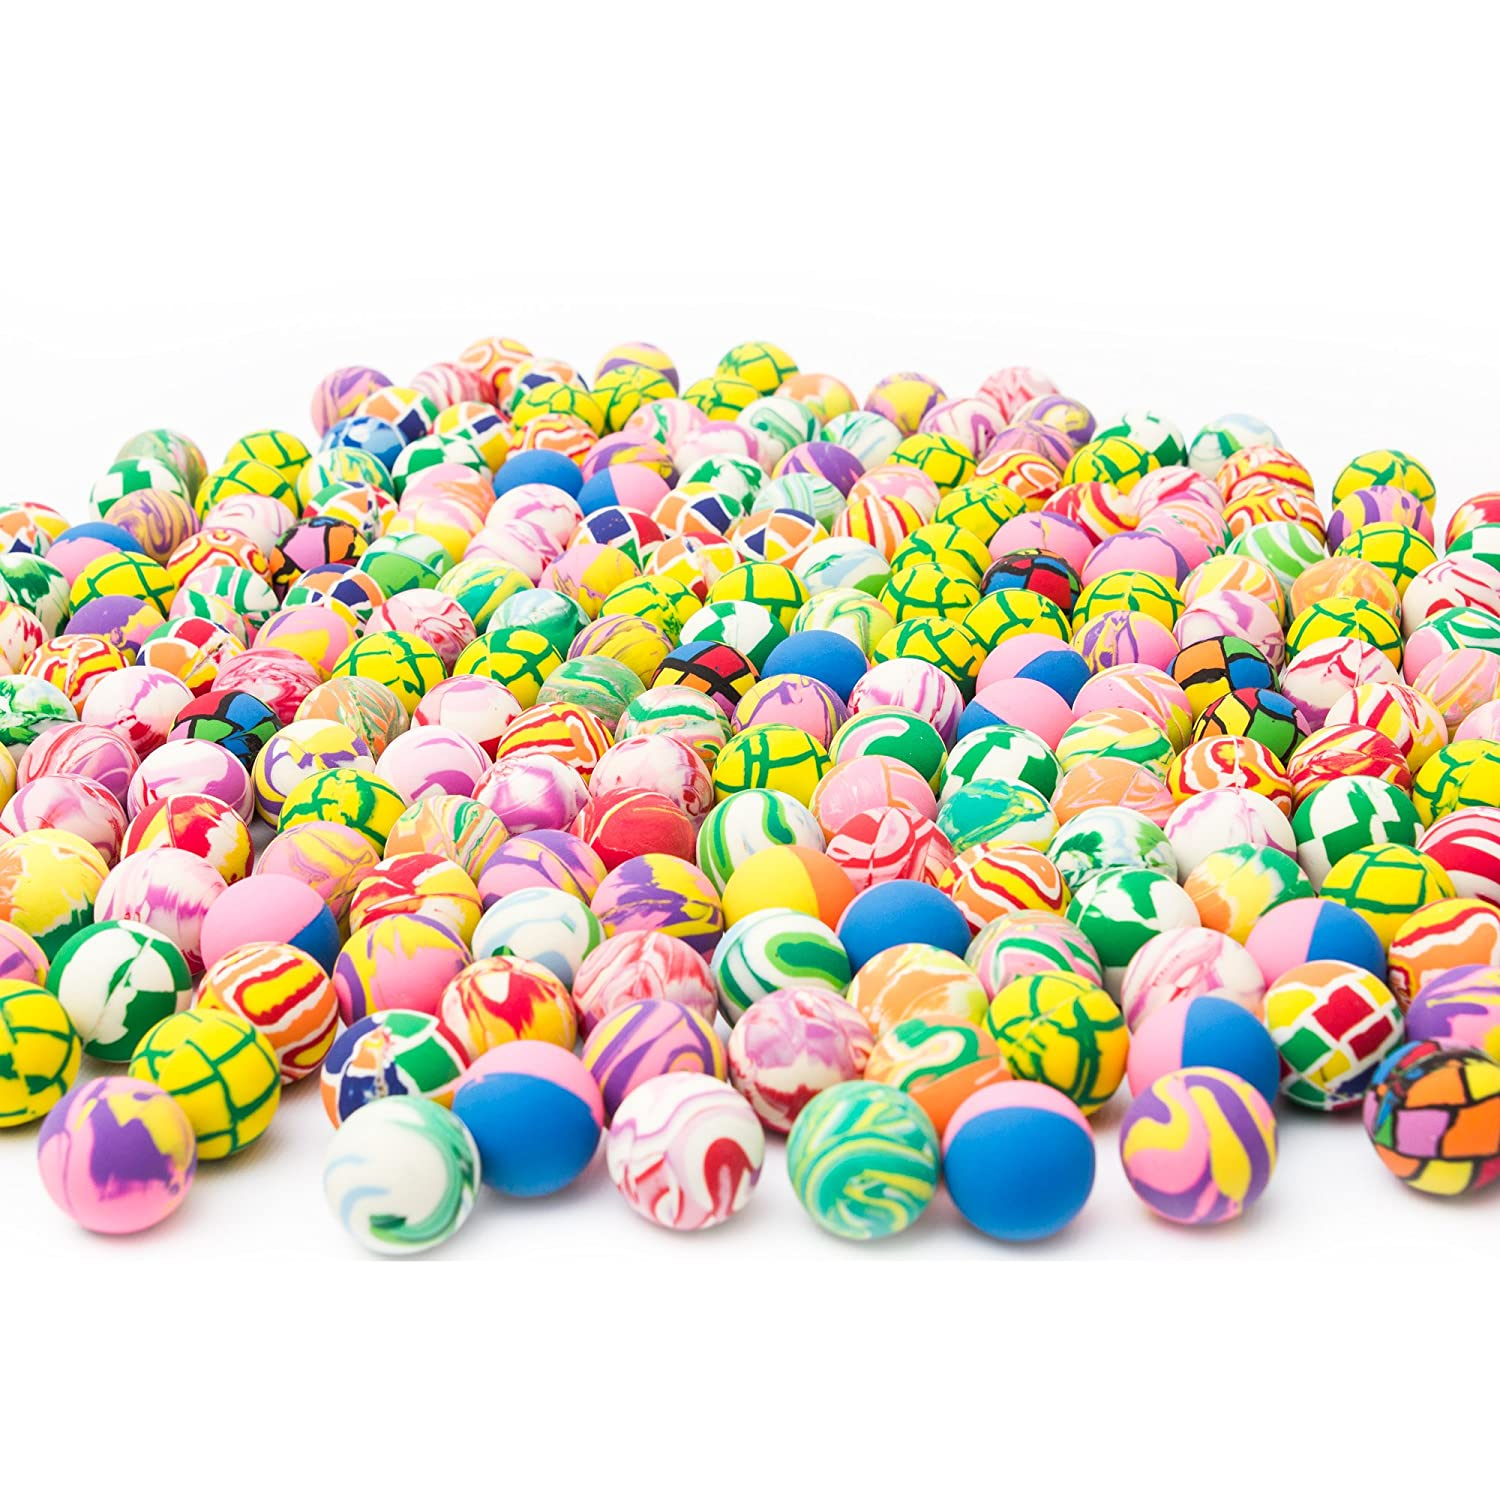 Fun Central AU197 Bouncy Balls - Assorted, 250Ct, 27 Mm